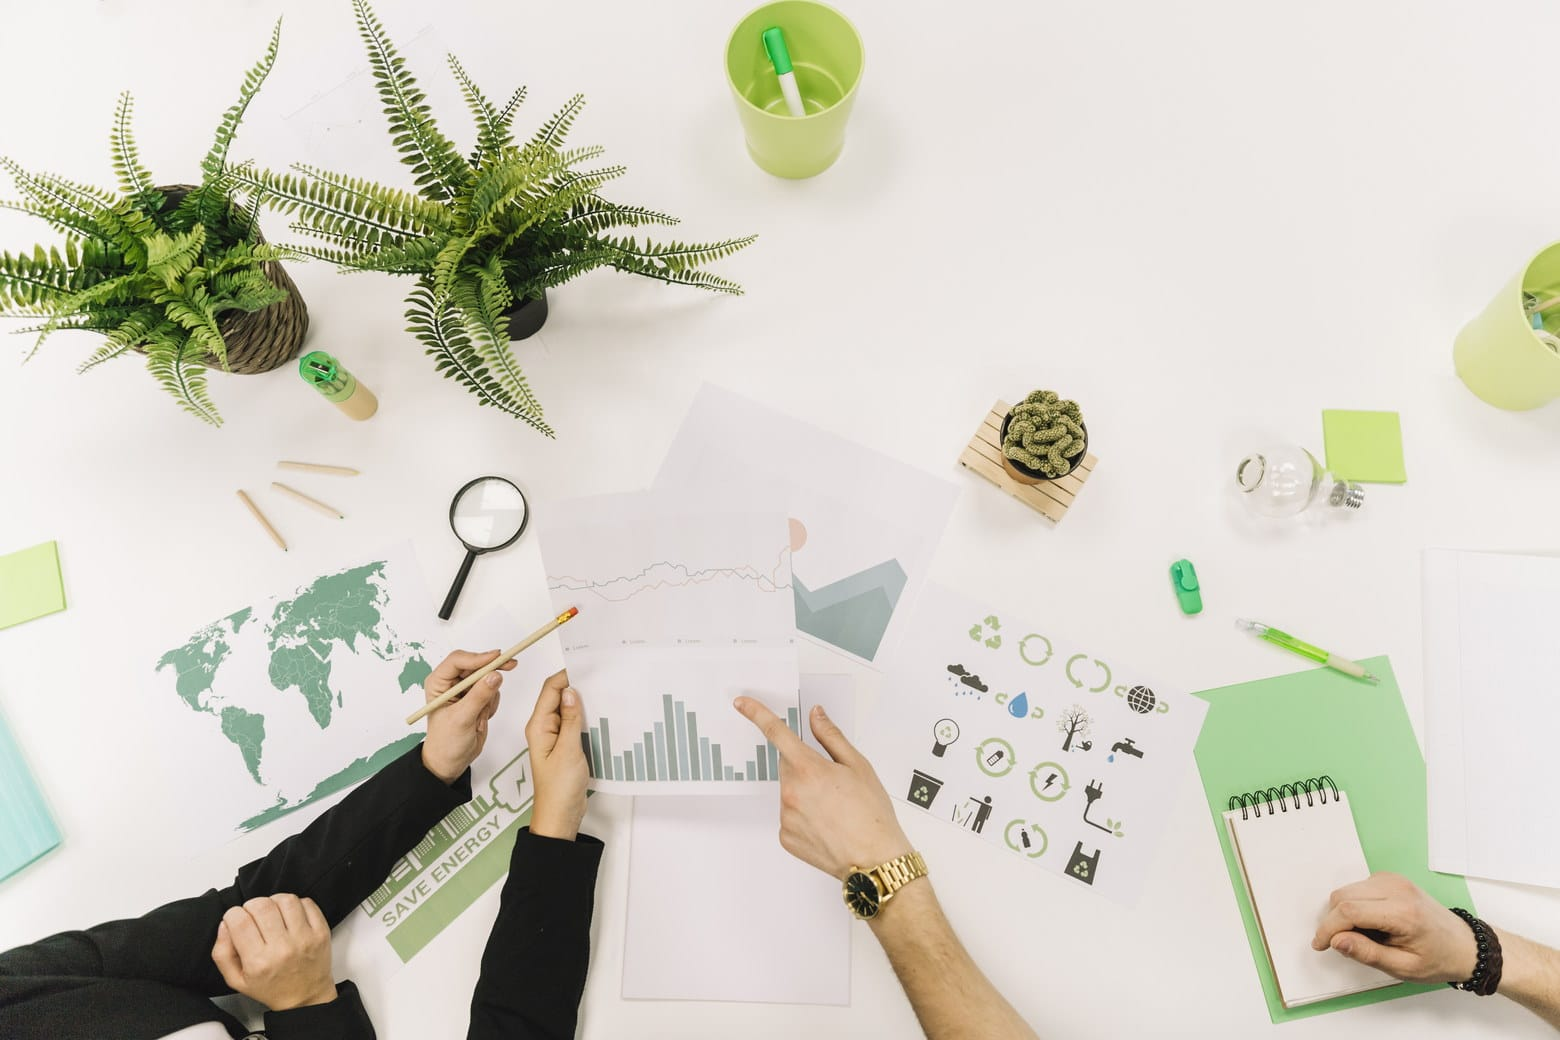 sustainable business growth